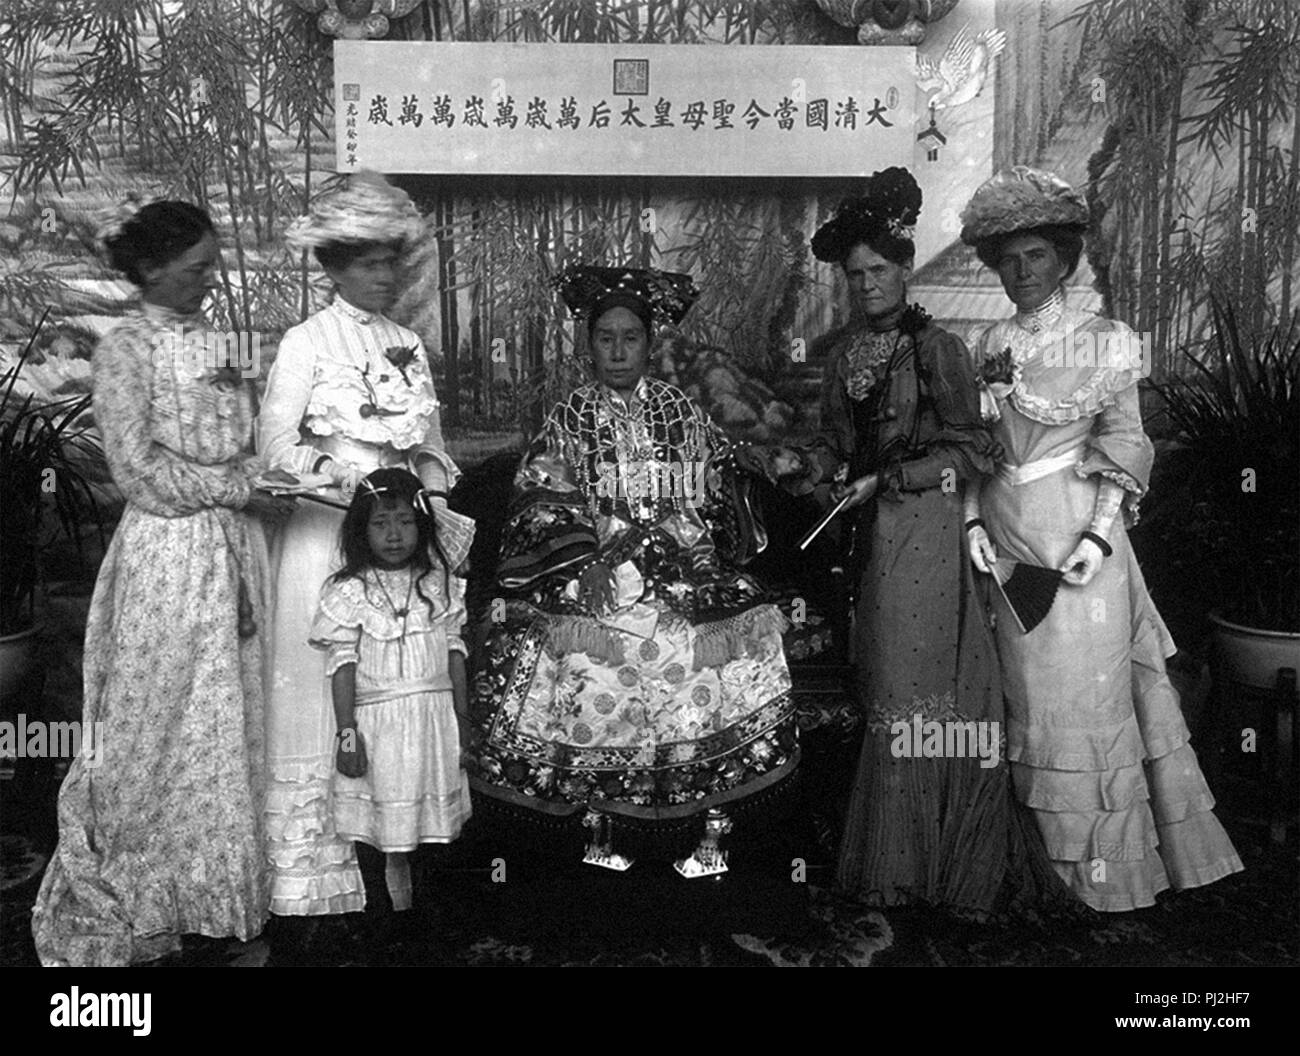 Empress Dowager Cixi and women of the American legation. Holding her hand is Sarah Conger, the wife of U.S. Ambassador Edwin H. Conger. - Stock Image